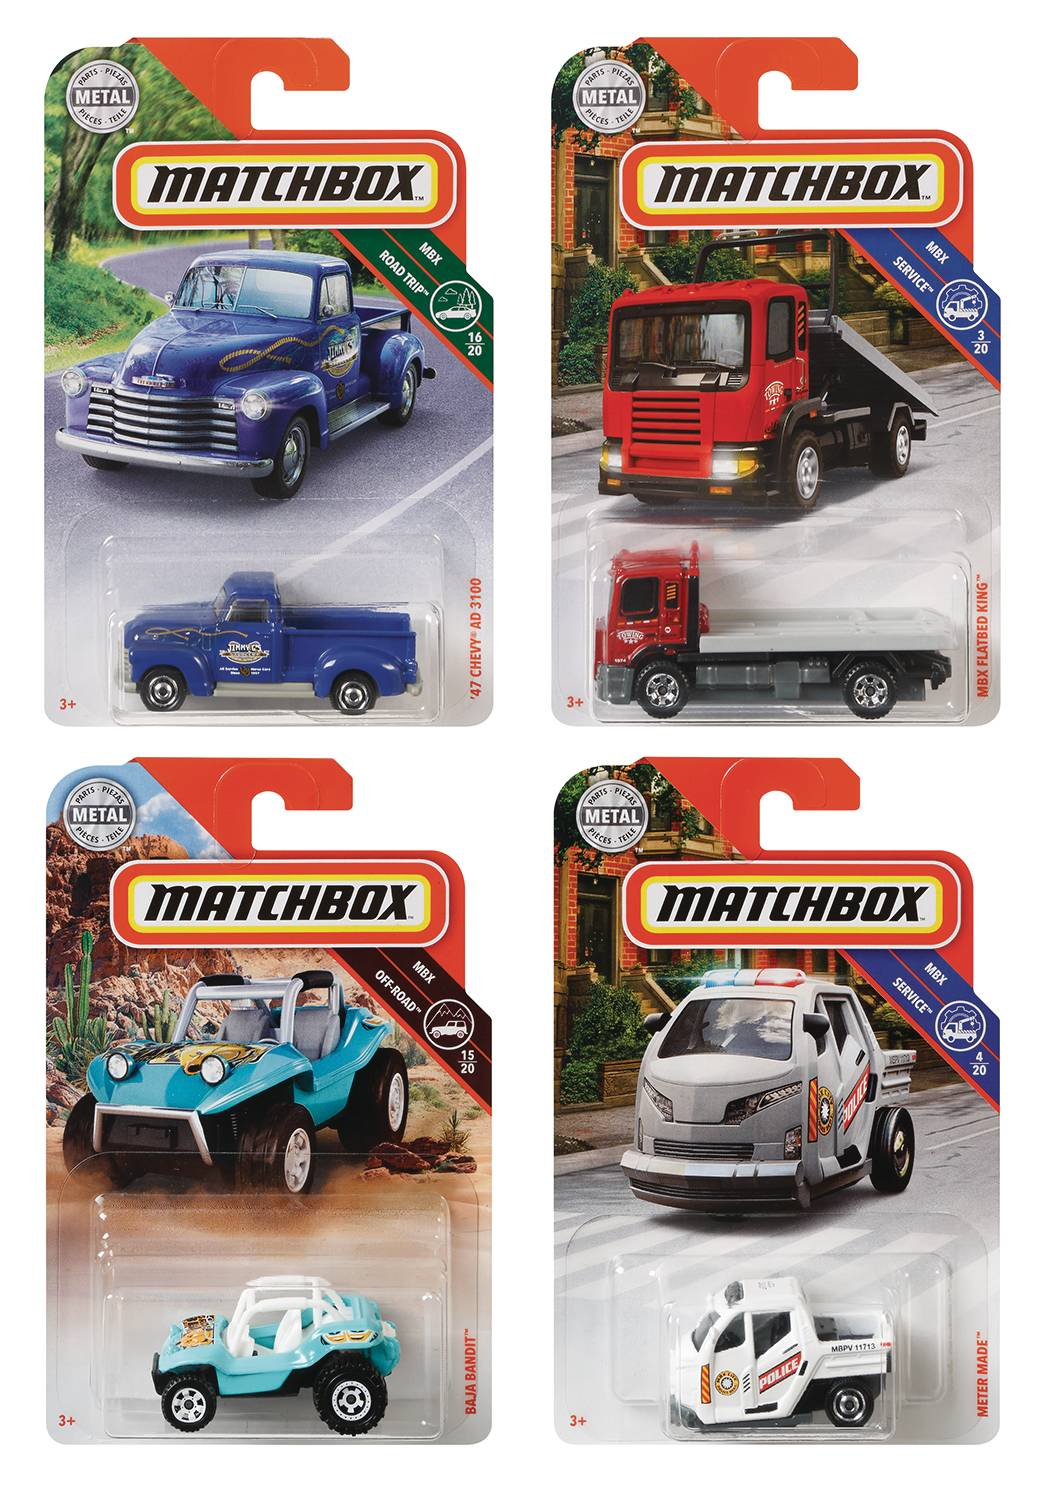 MATCHBOX 1/64 DIE-CAST SINGLE CAR ASST